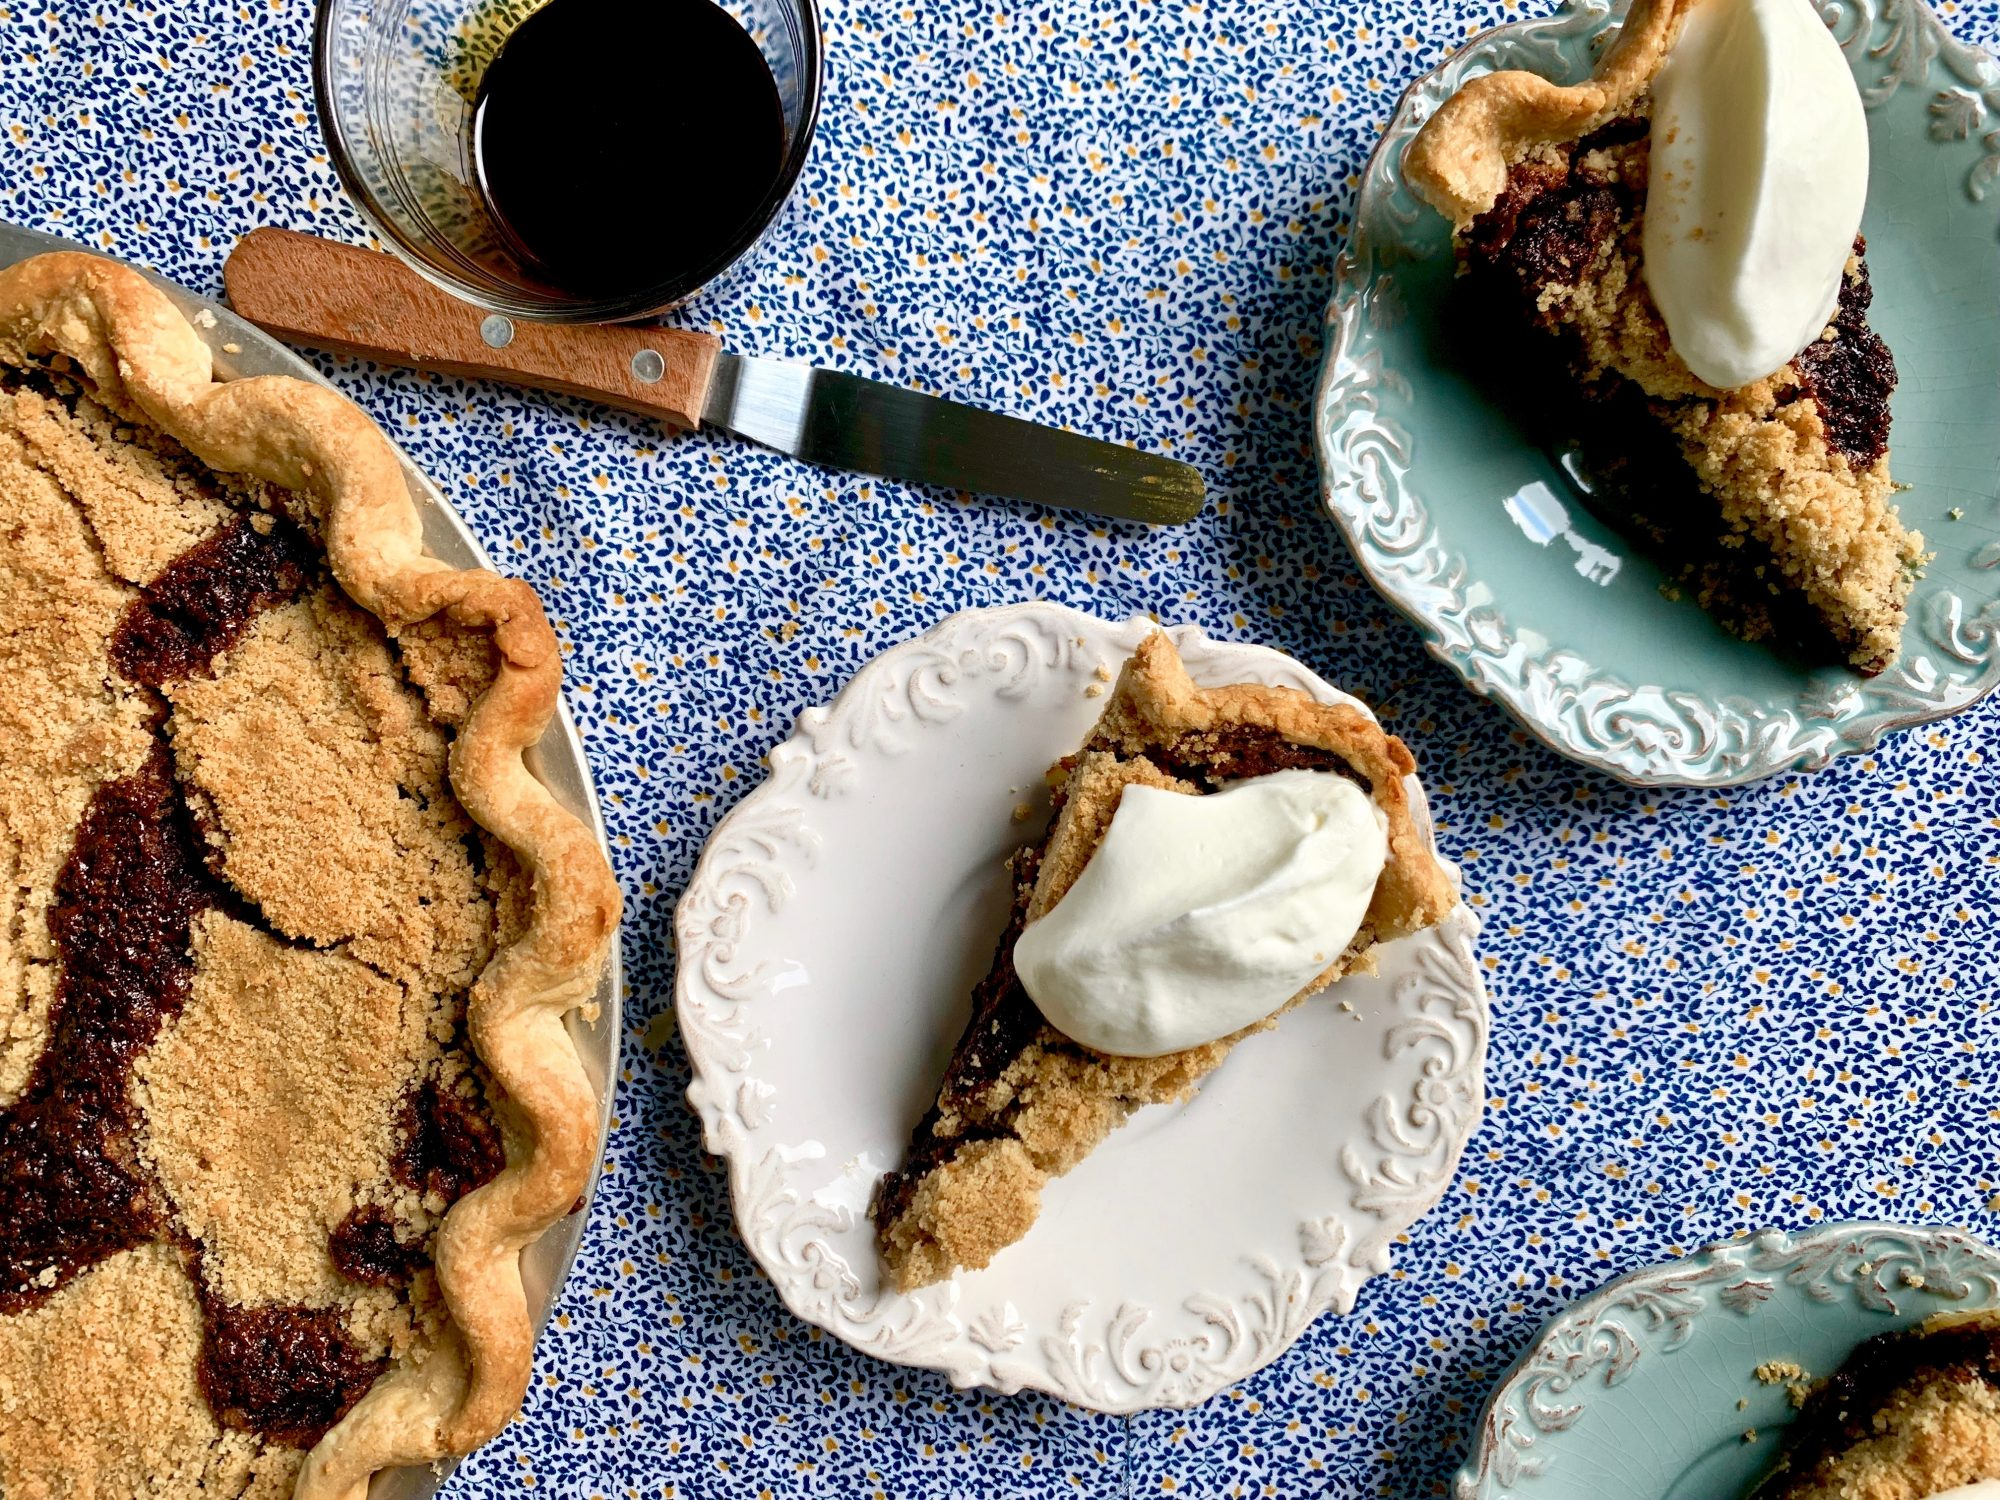 March: Old-Fashioned Shoofly Pie